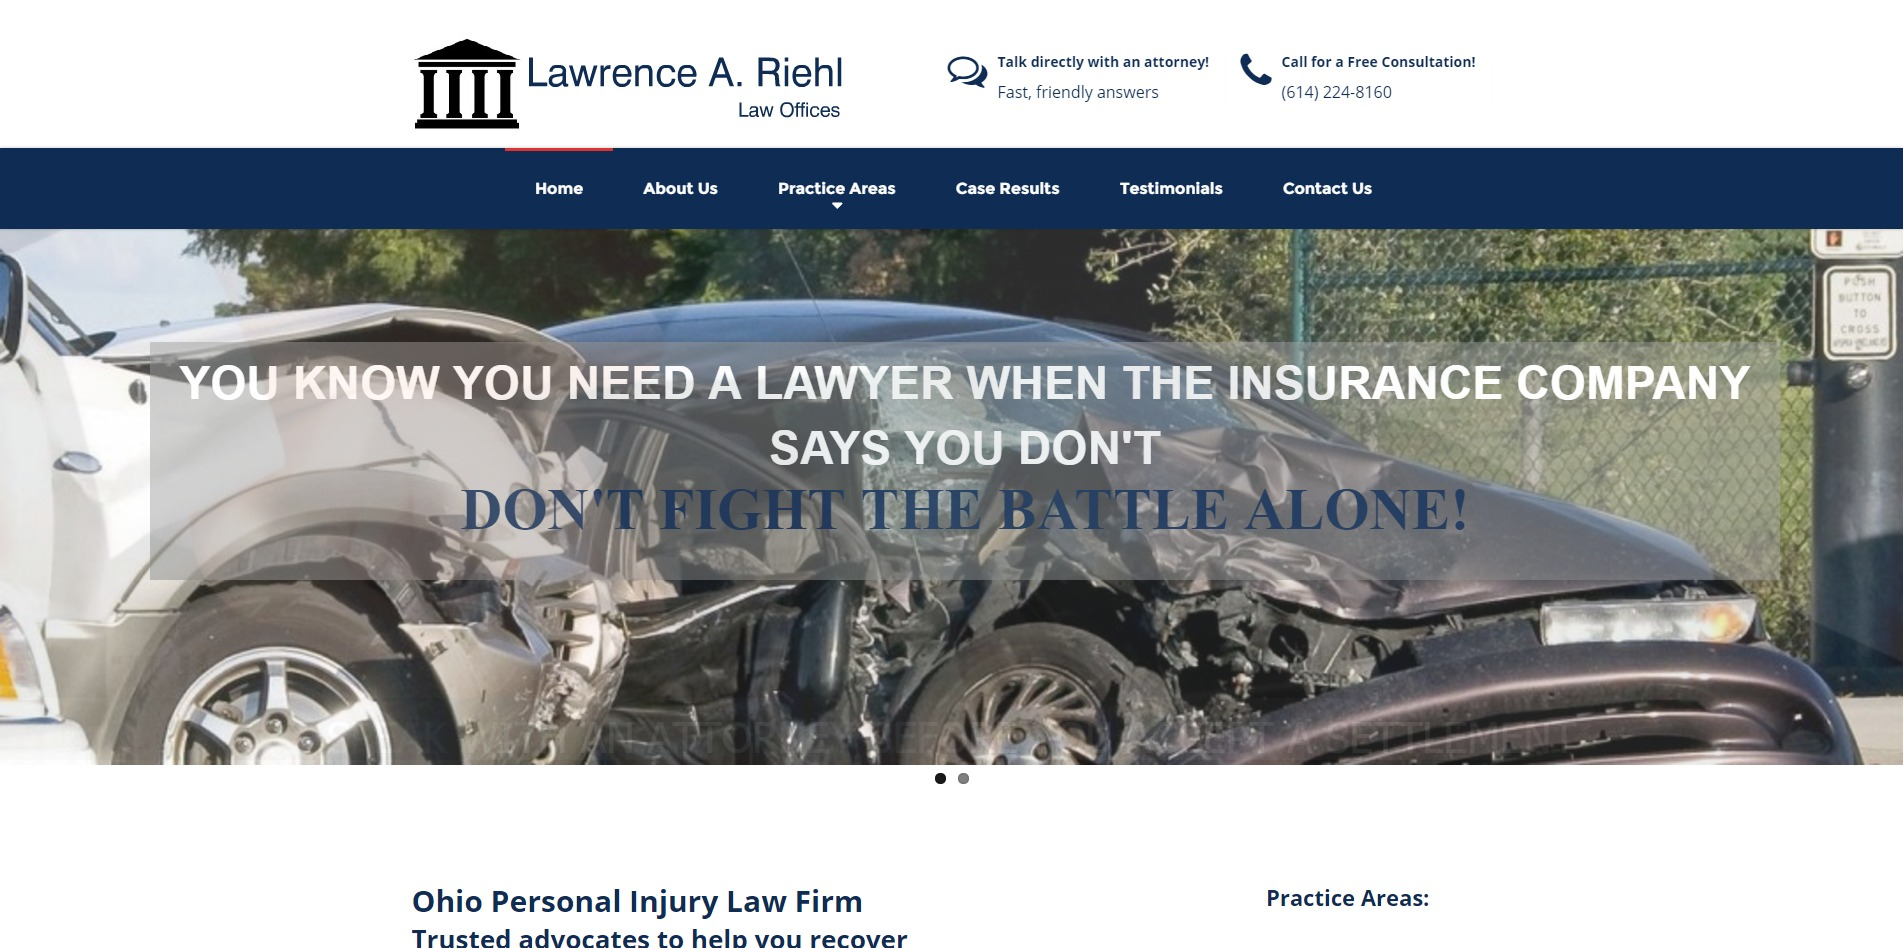 Lawrence A. Riehl Law Offices